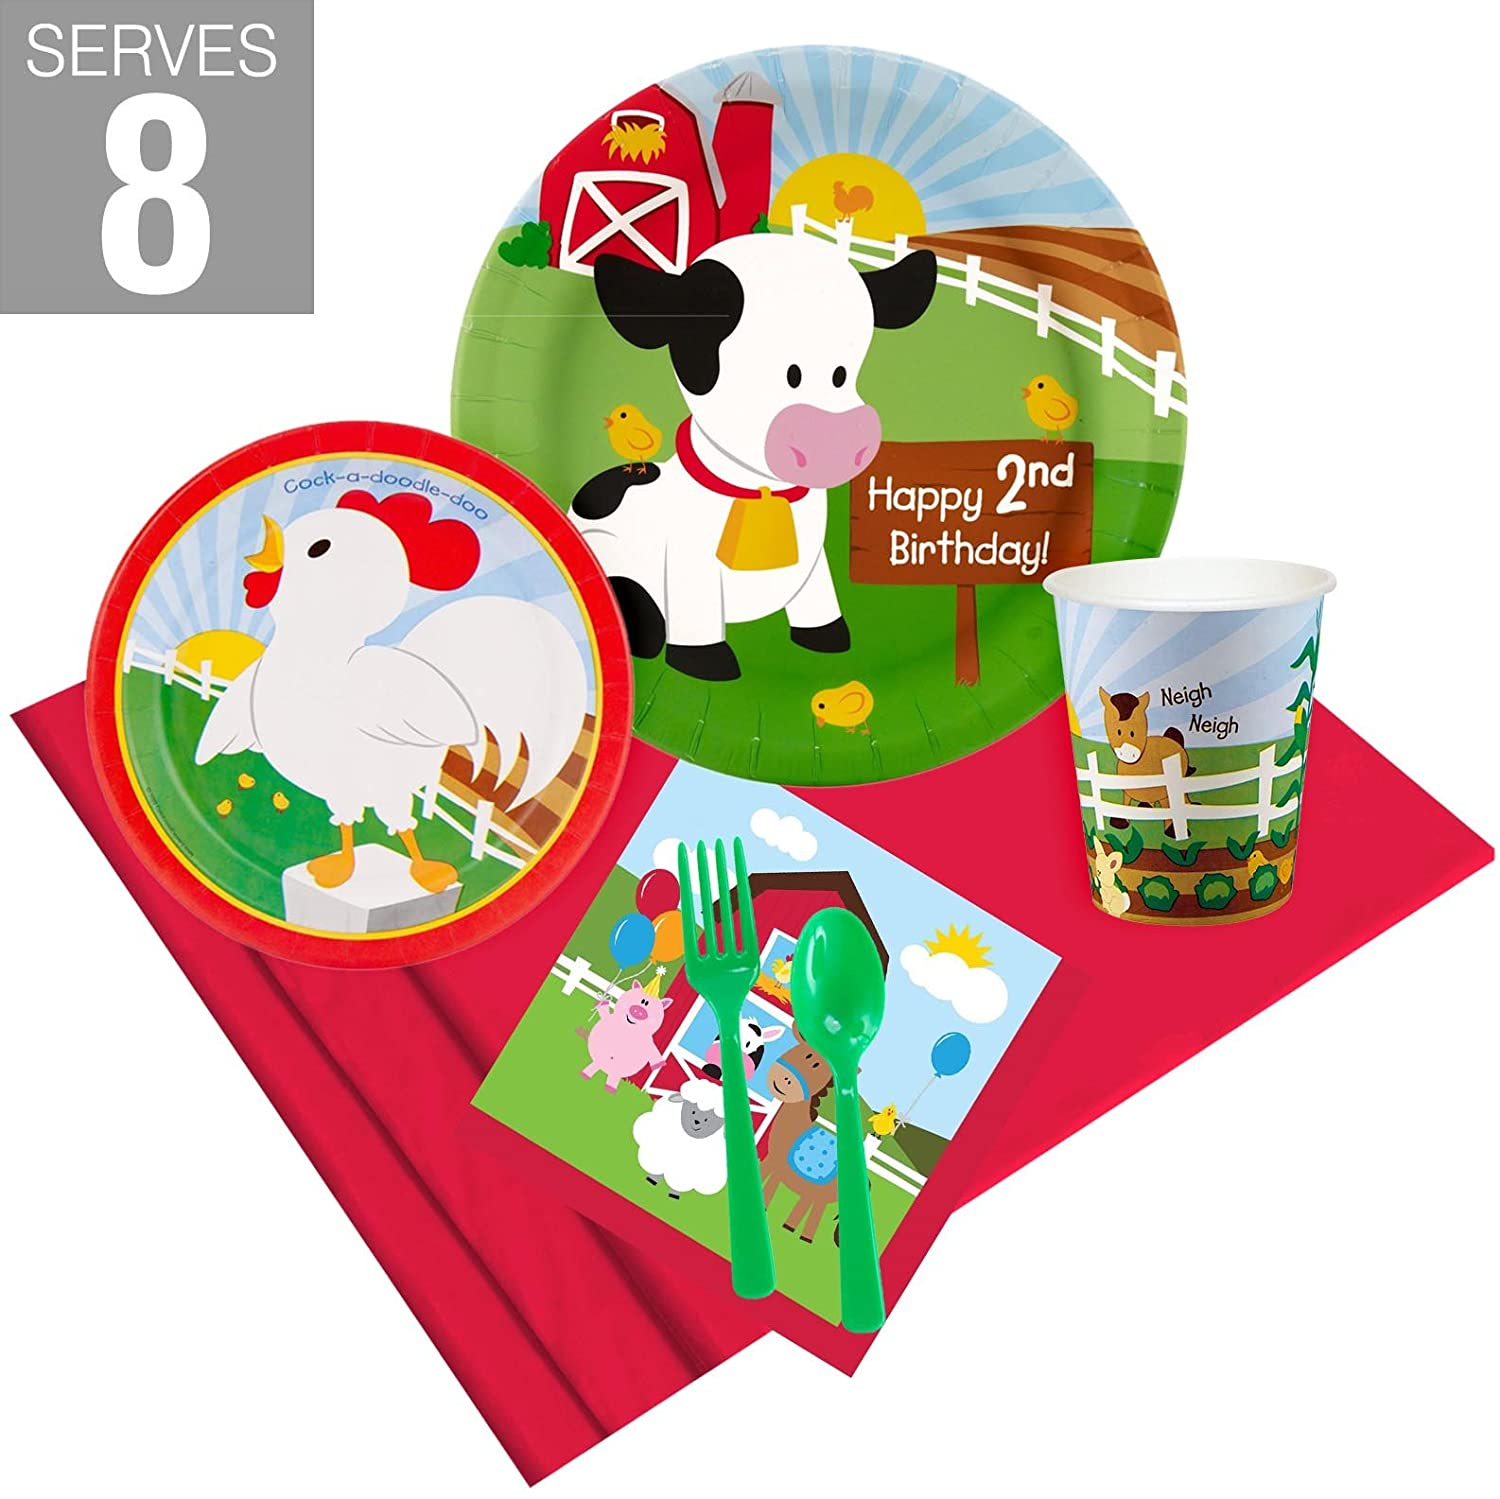 Barnyard 2nd Birthday Party Supplies Party Pack for 8